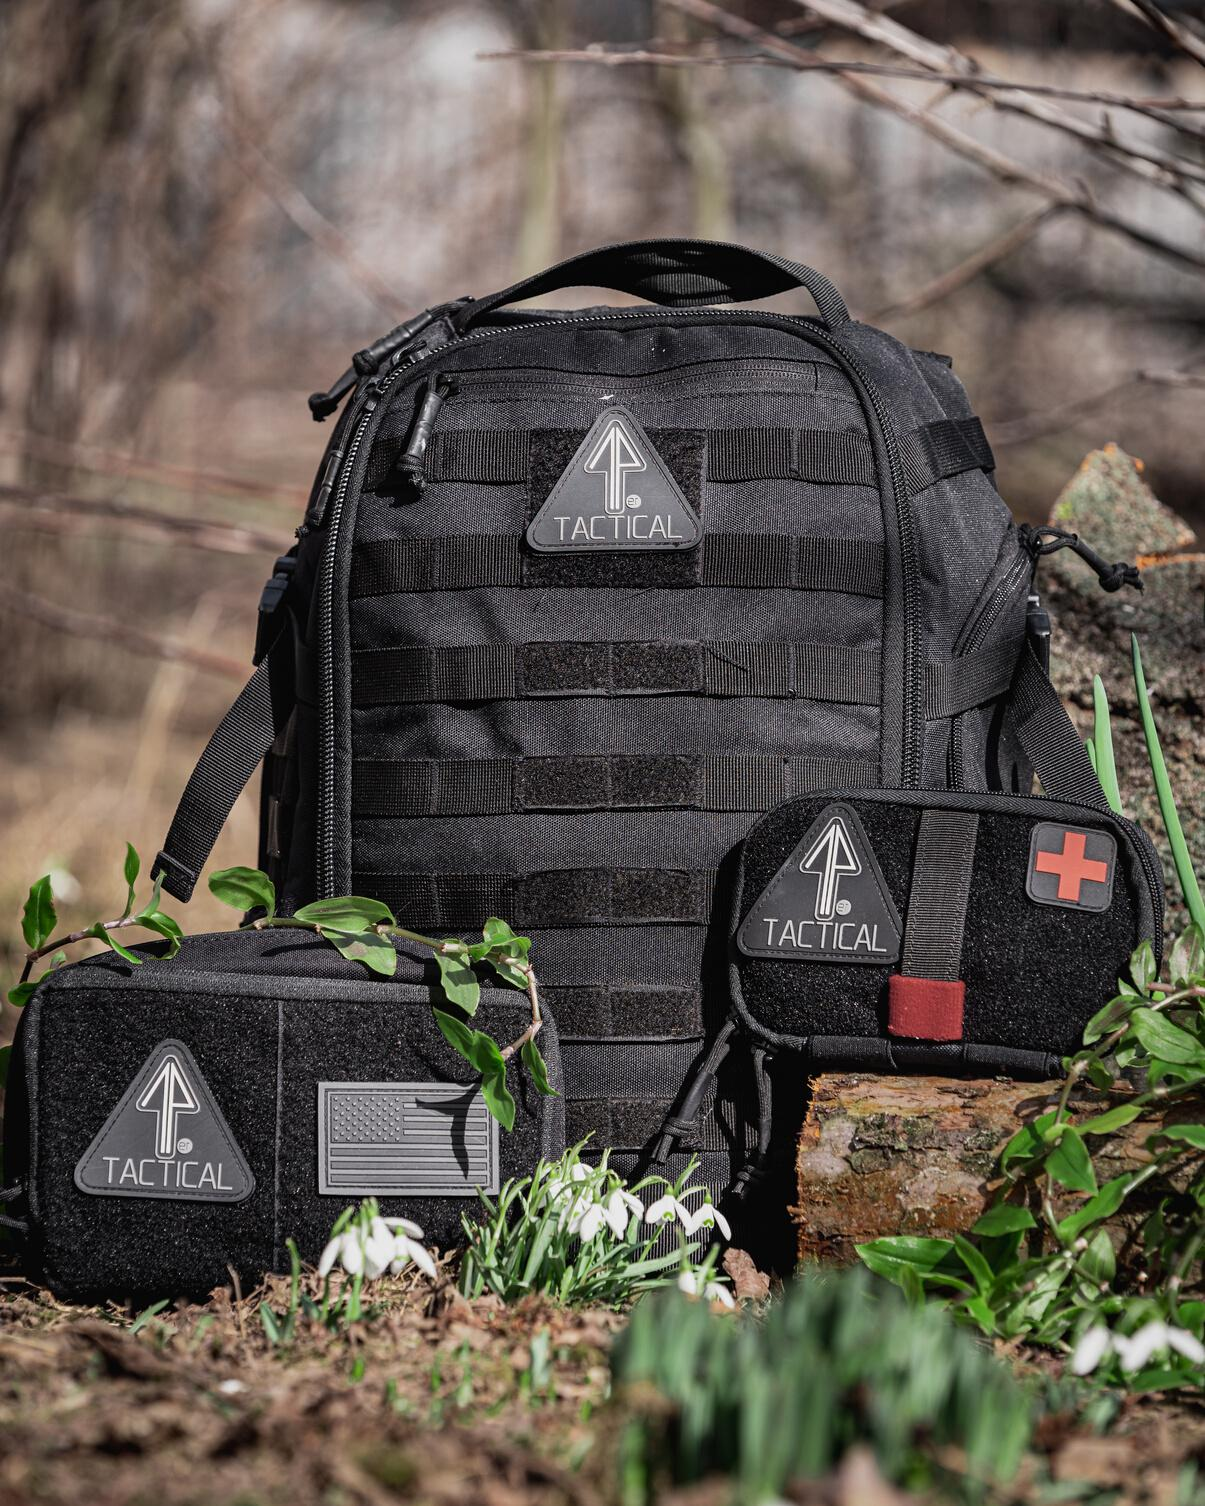 A man is outdoors camping with his 14er Tactical Backpack and gear.